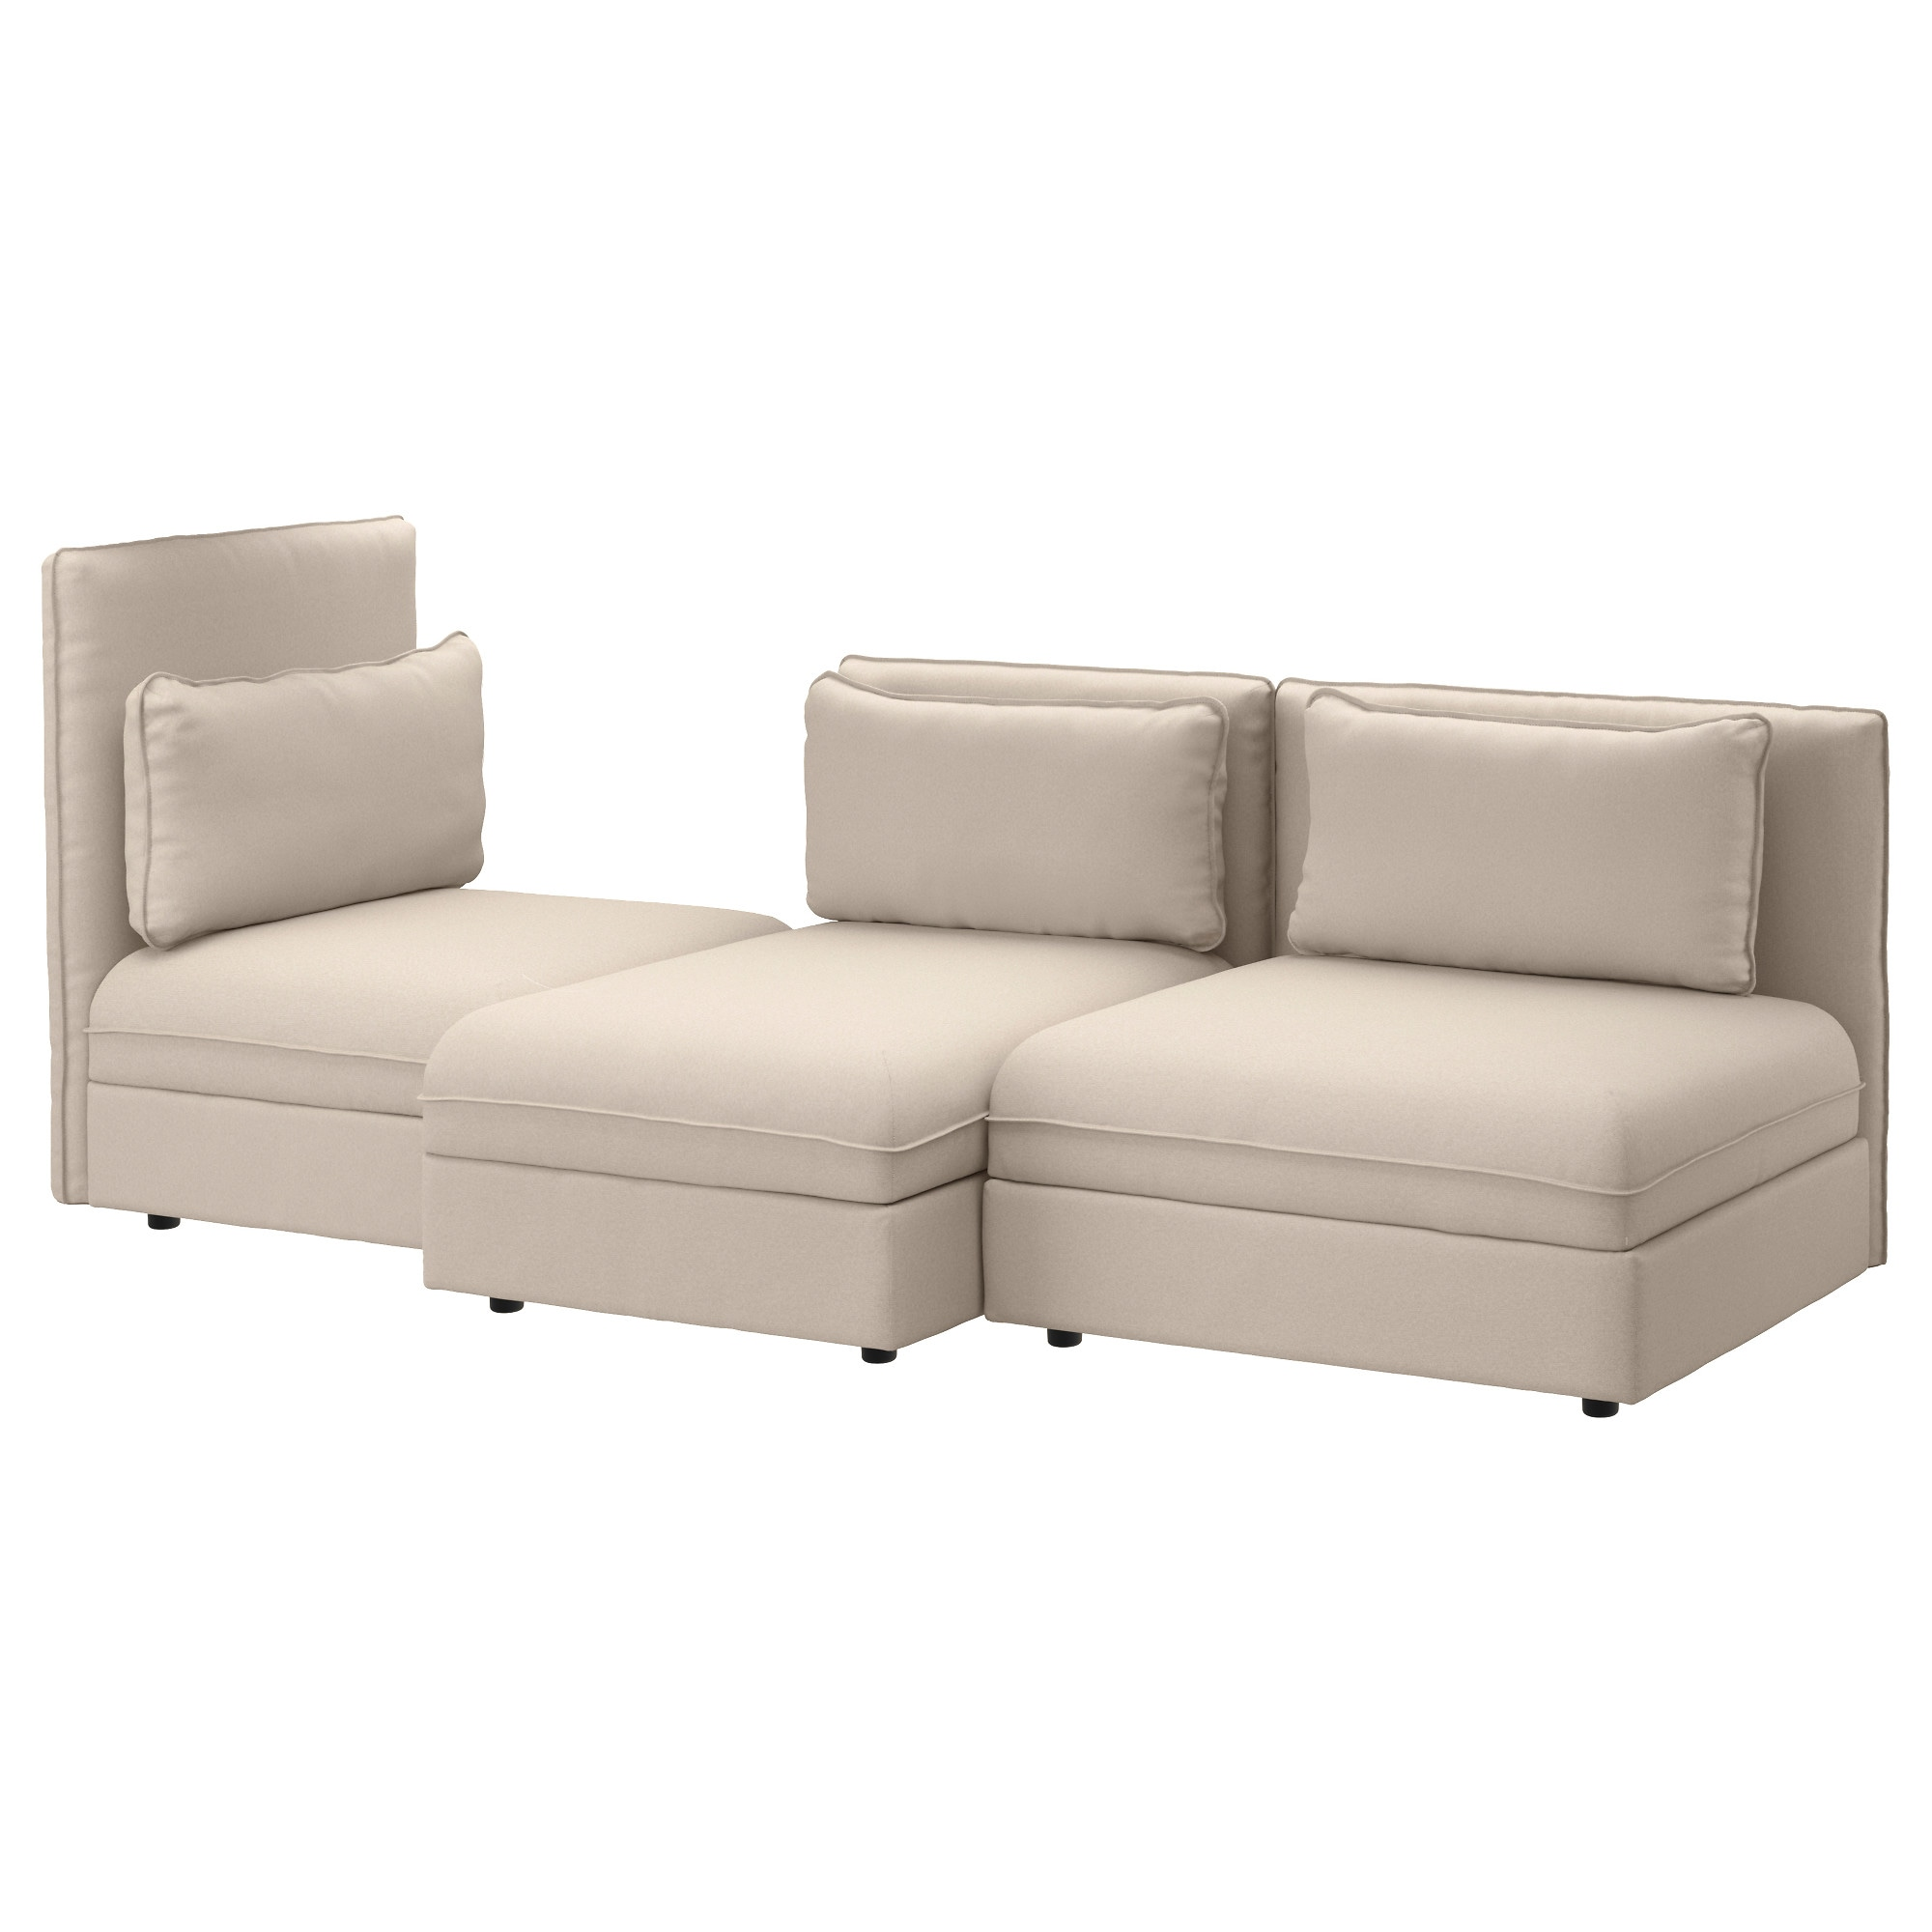 VALLENTUNA sofa Murum beige Width 107 1/2   Depth 36 5  sc 1 st  Ikea : ikea chaise lounge - Sectionals, Sofas & Couches